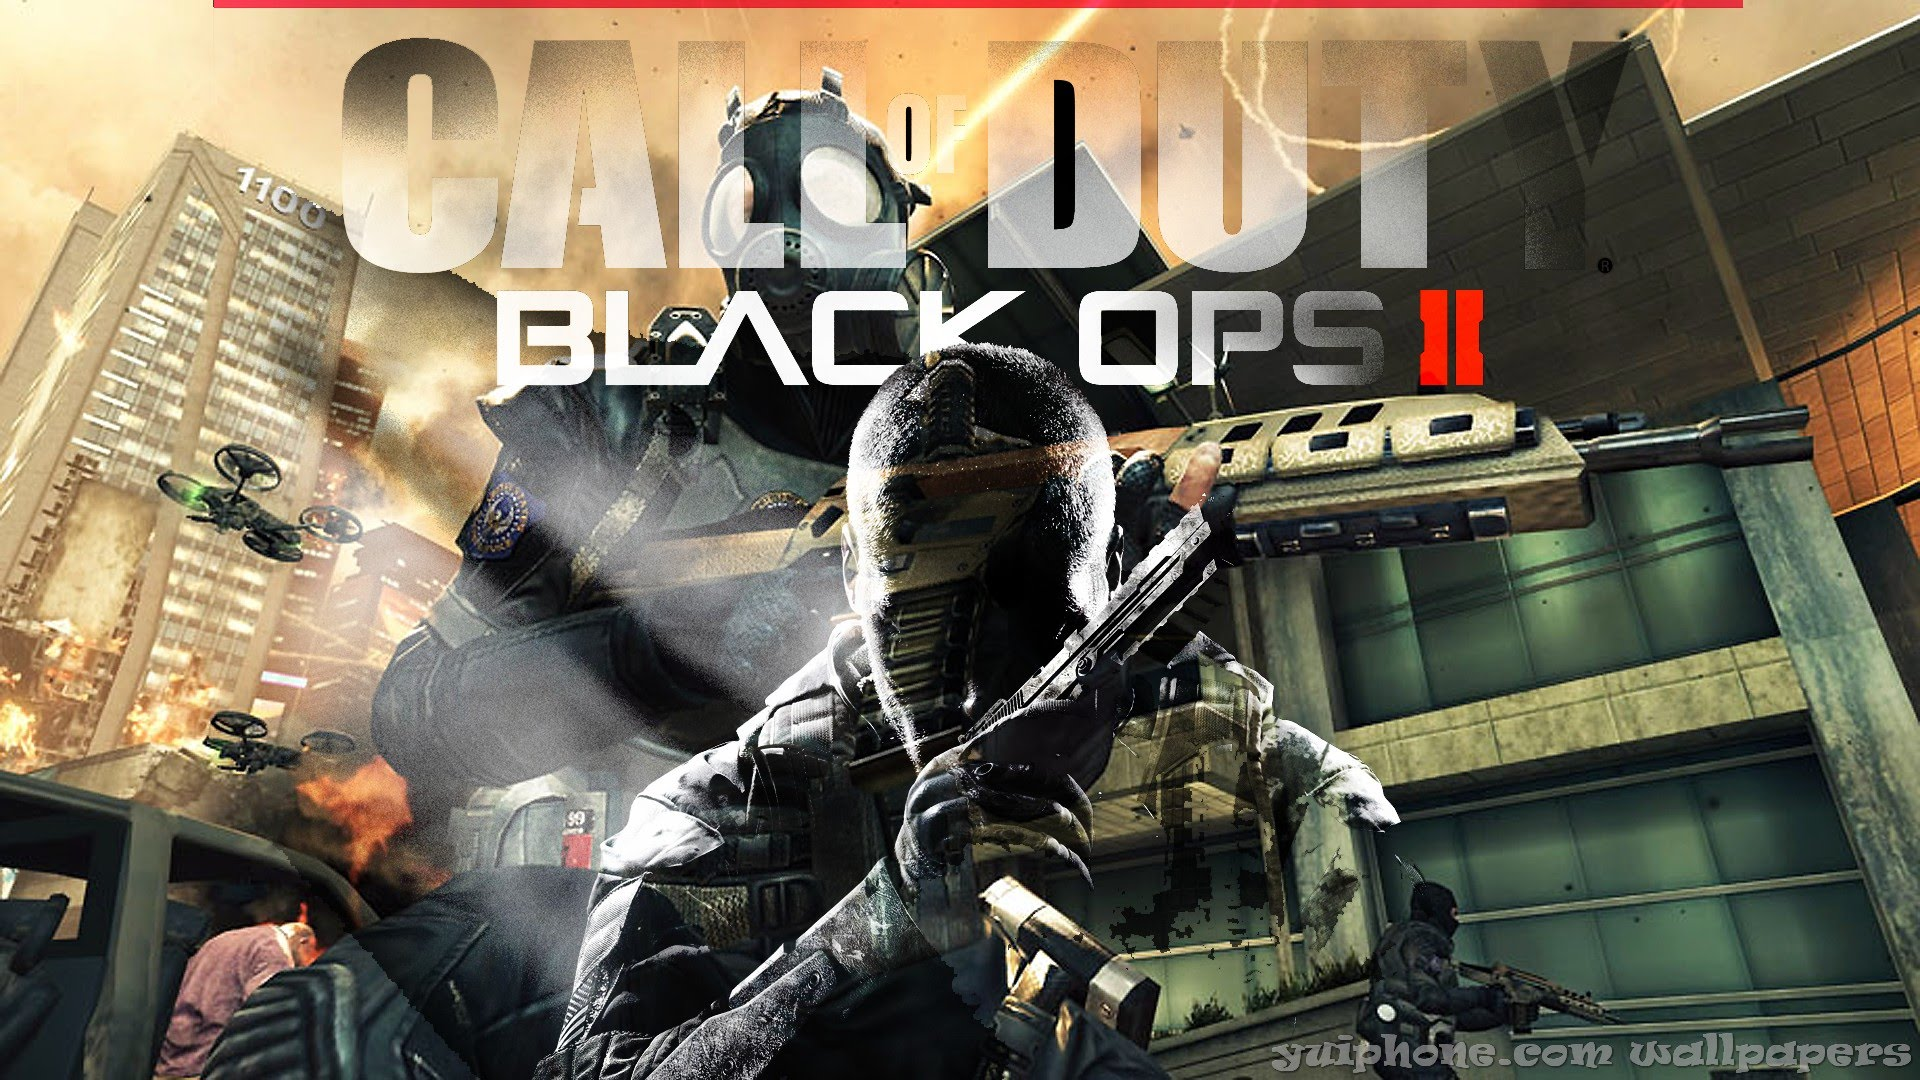 Call-Of-Duty-Black-Ops-LIVE-STREAM-w-Commentary-PS-GTAV-part-COD-wallpaper-wp3603838